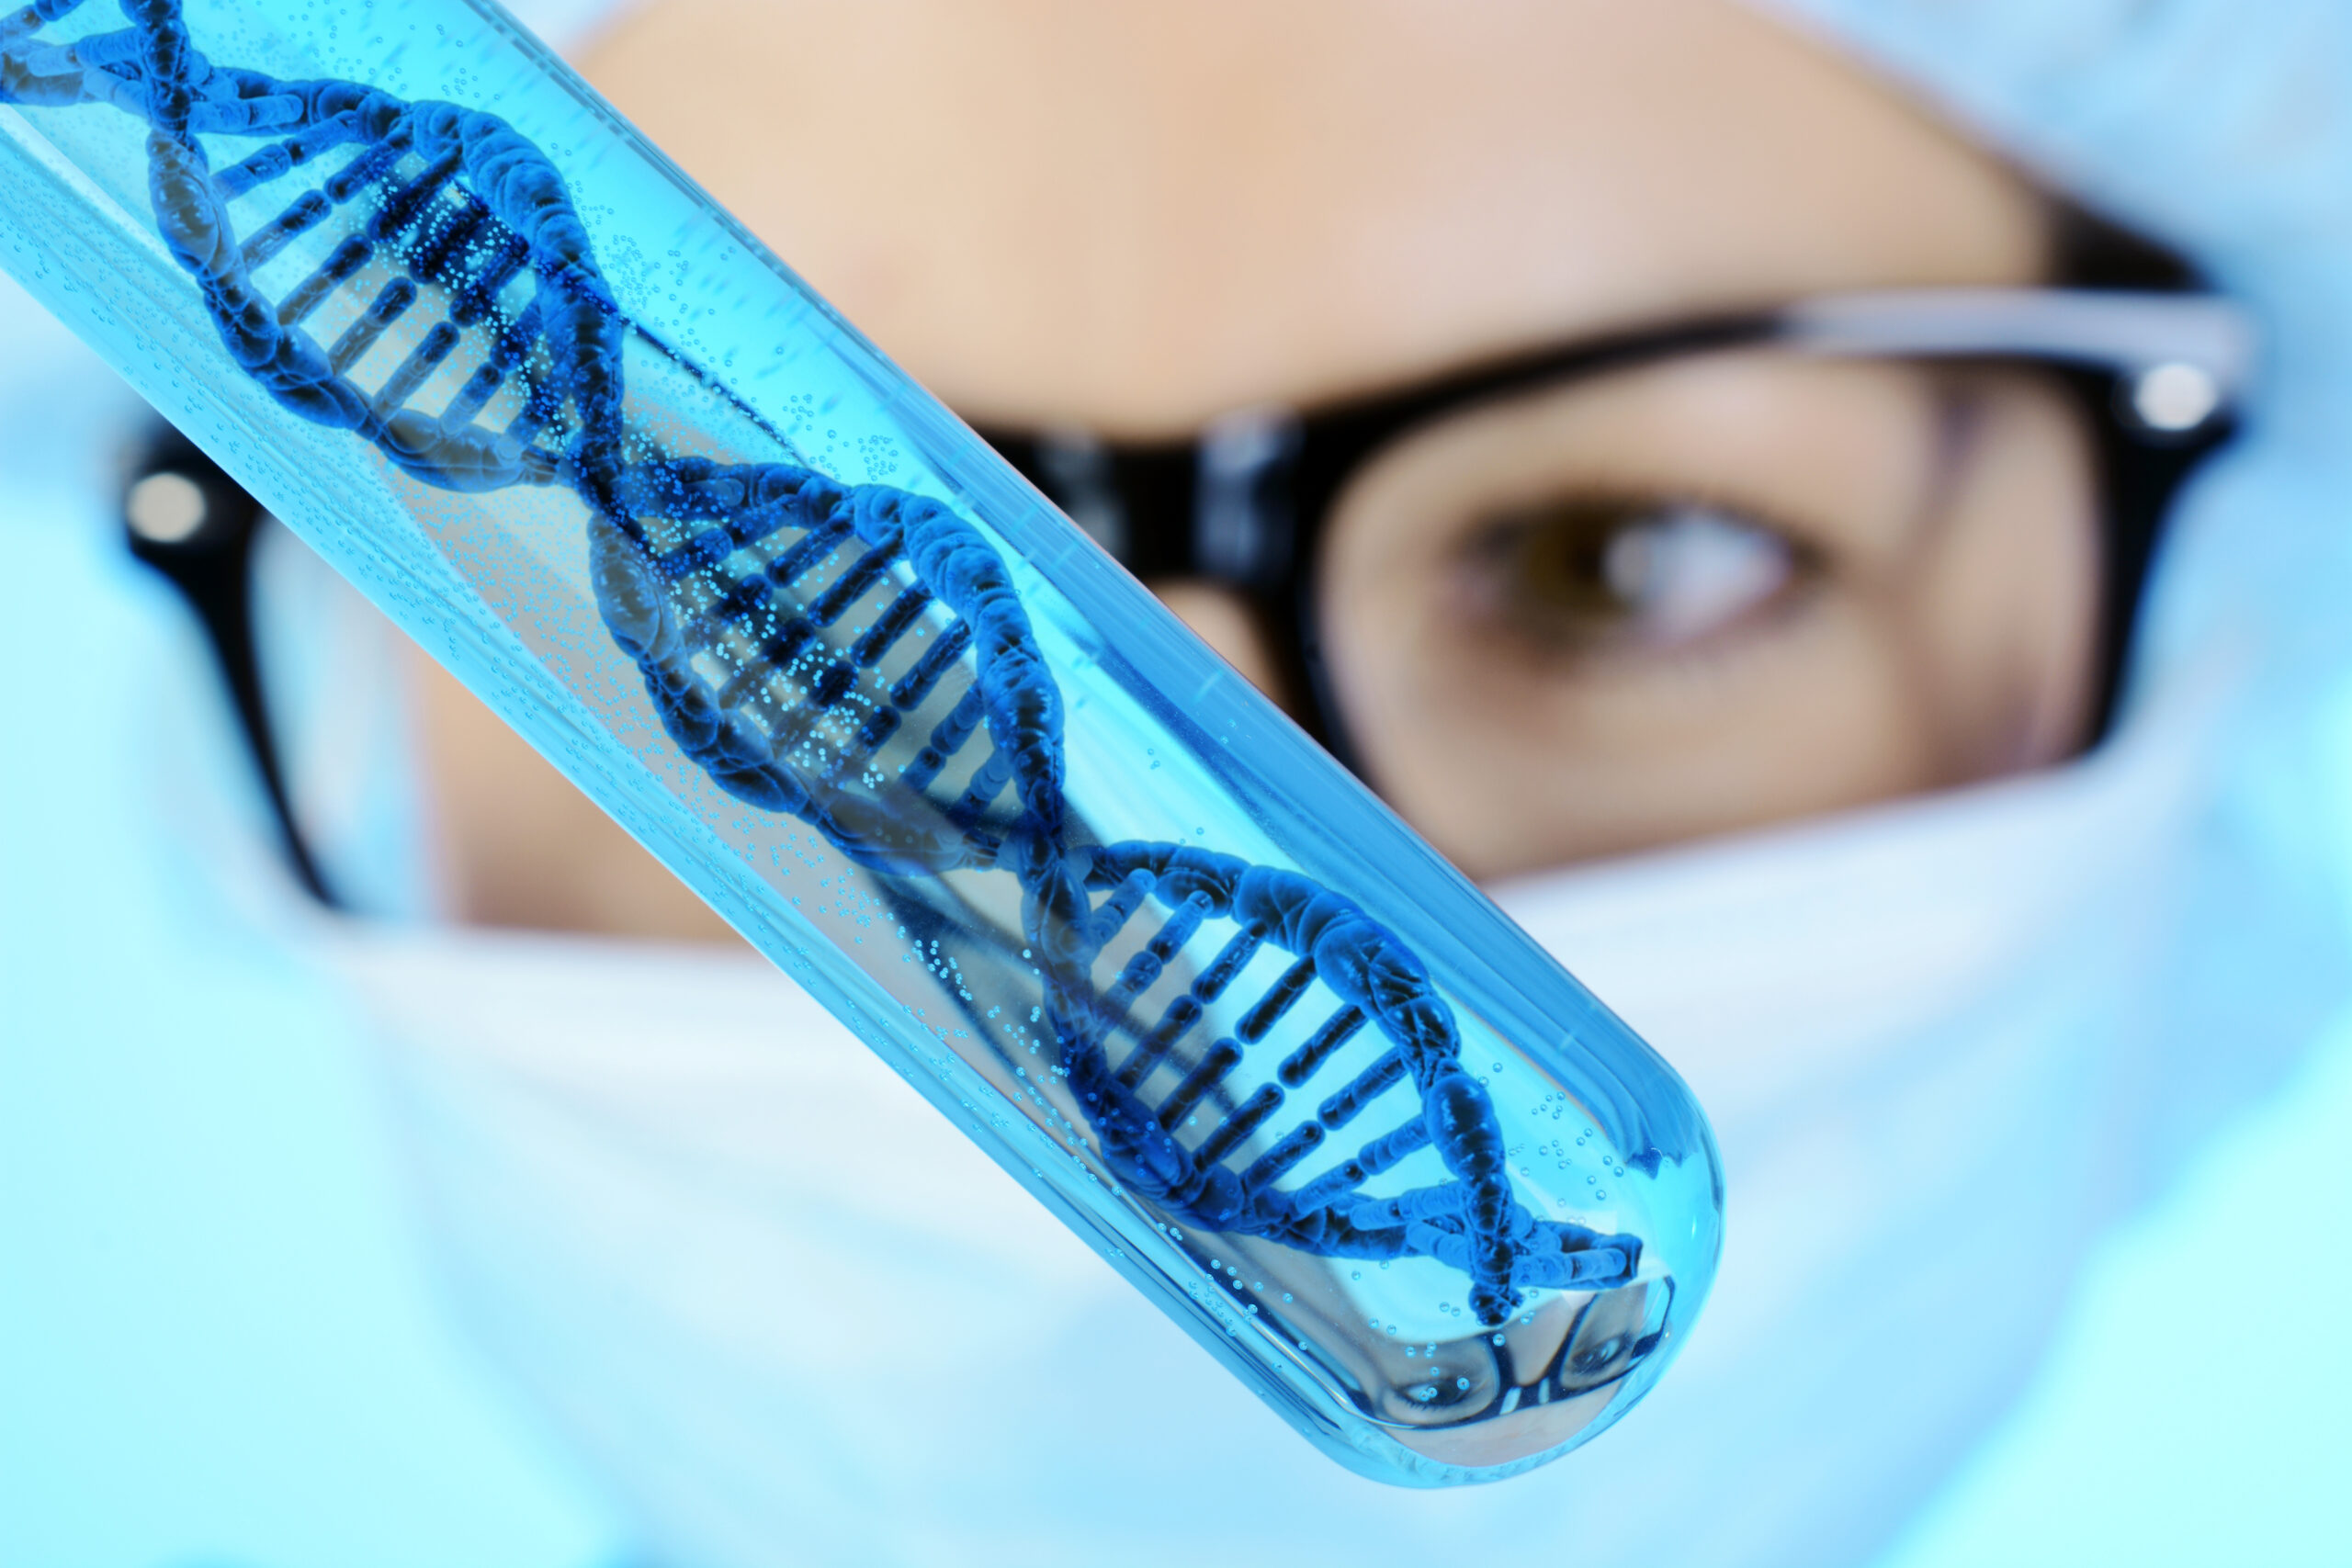 Enabling large-scale genomics and precision medicine